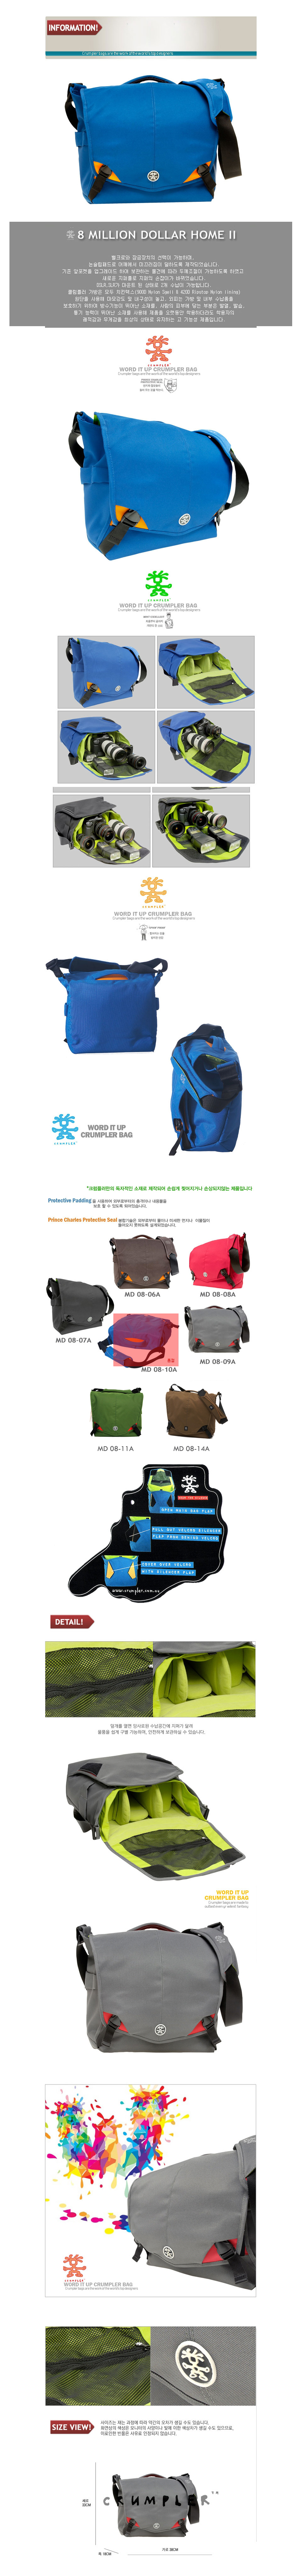 [크럼플러] CRUMPLER 8 Million Dollar Home ll - MD-08 -